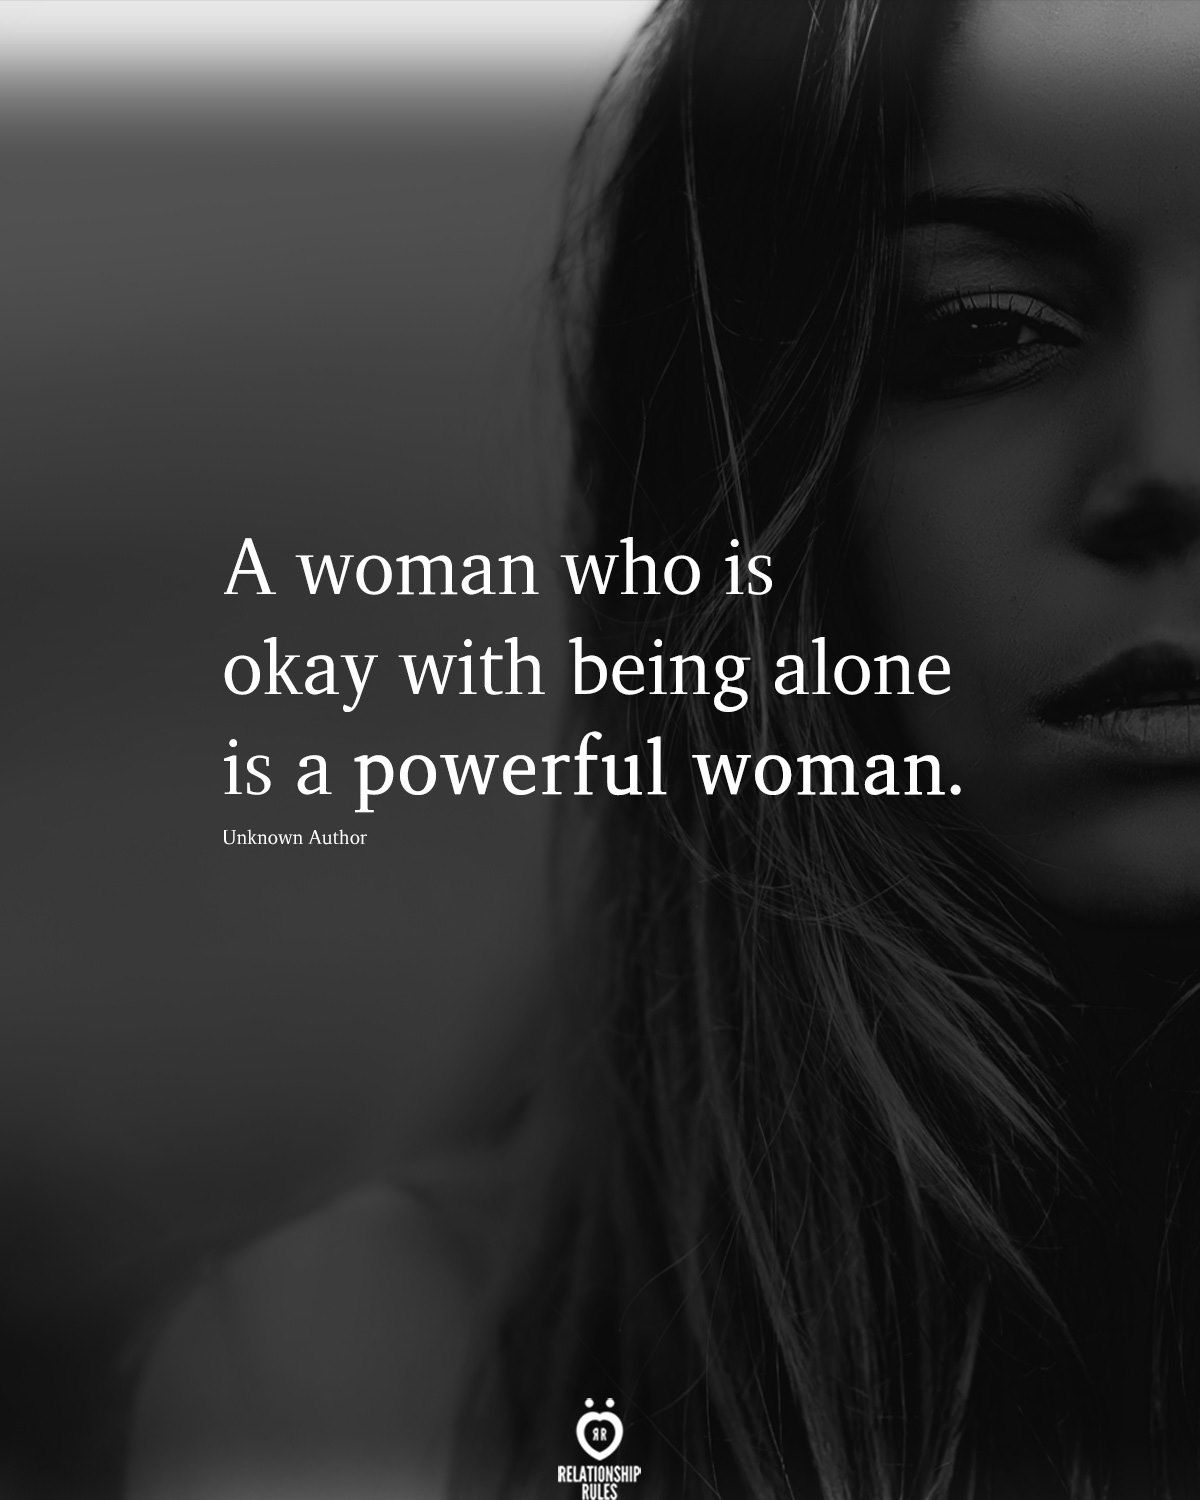 A Woman Who Is Okay With Being Alone Is A Powerful Woman.